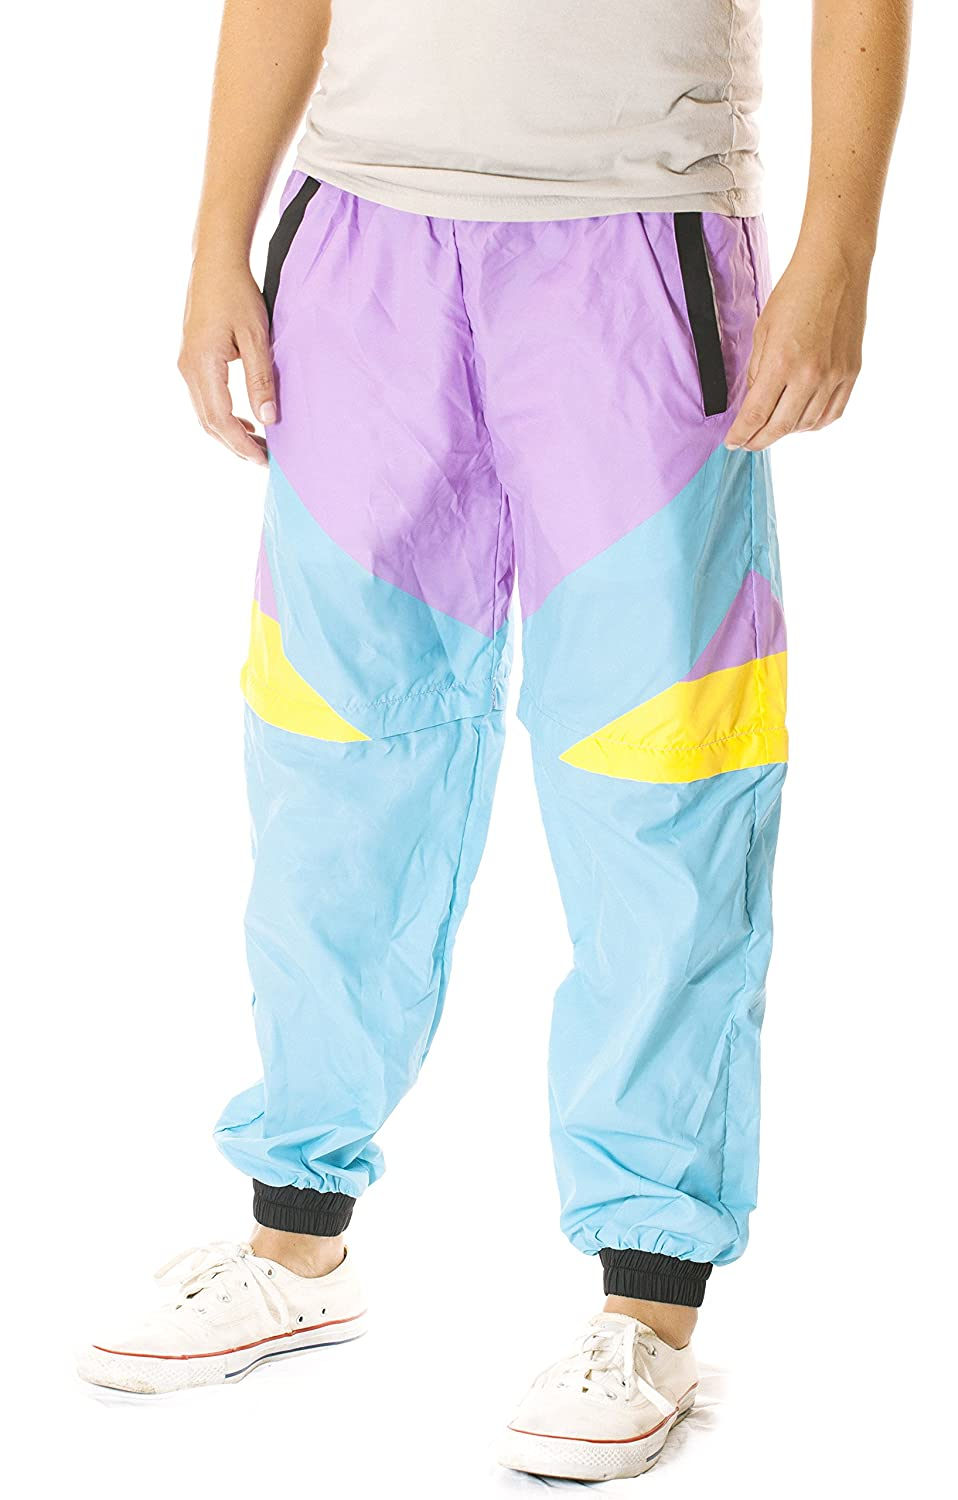 Hippie Pants, Jeans, Bell Bottoms, Palazzo, Yoga Funny Guy Mugs 80s & 90s Retro Neon Windbreaker Pants - Convertible Shorts Or Pants $46.99 AT vintagedancer.com